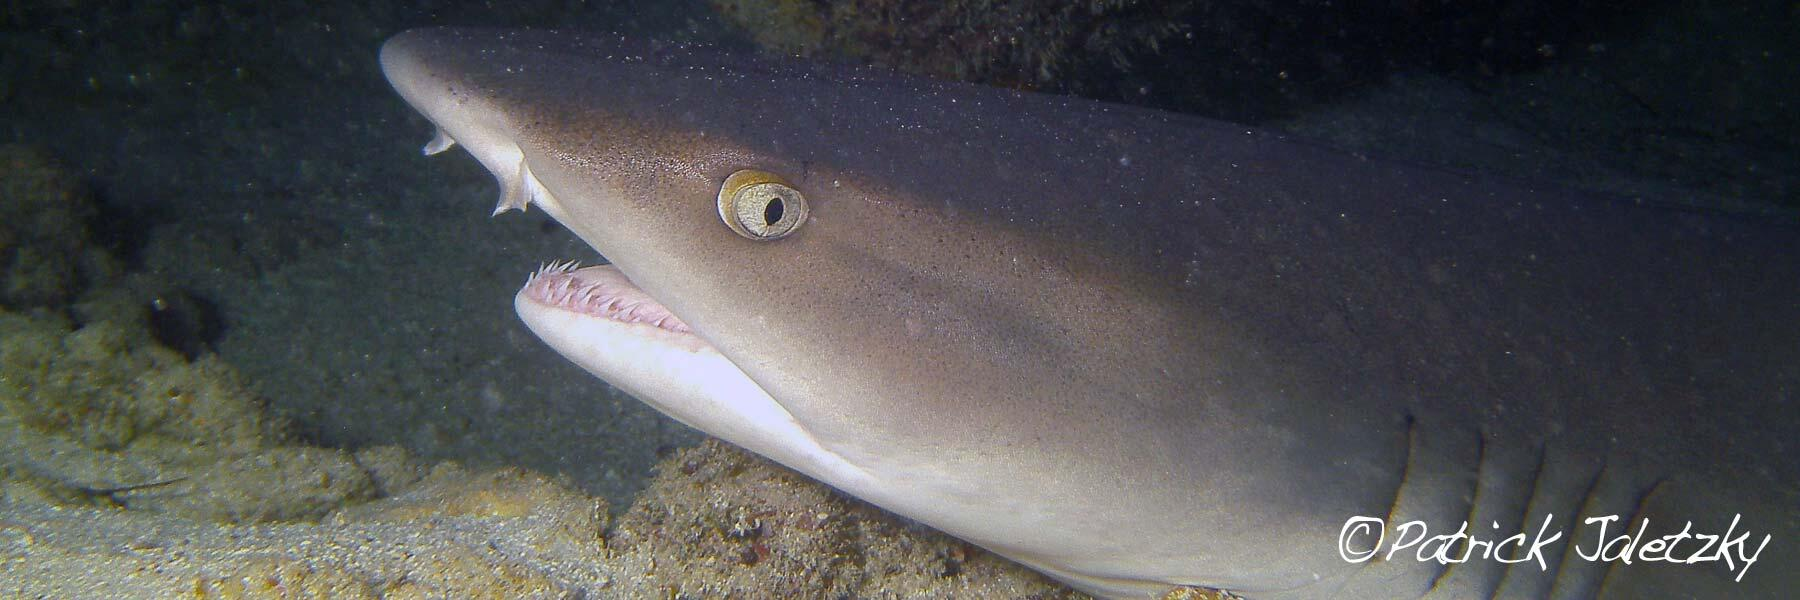 Whitetip reef shark on PADI dive course in Cook Islands